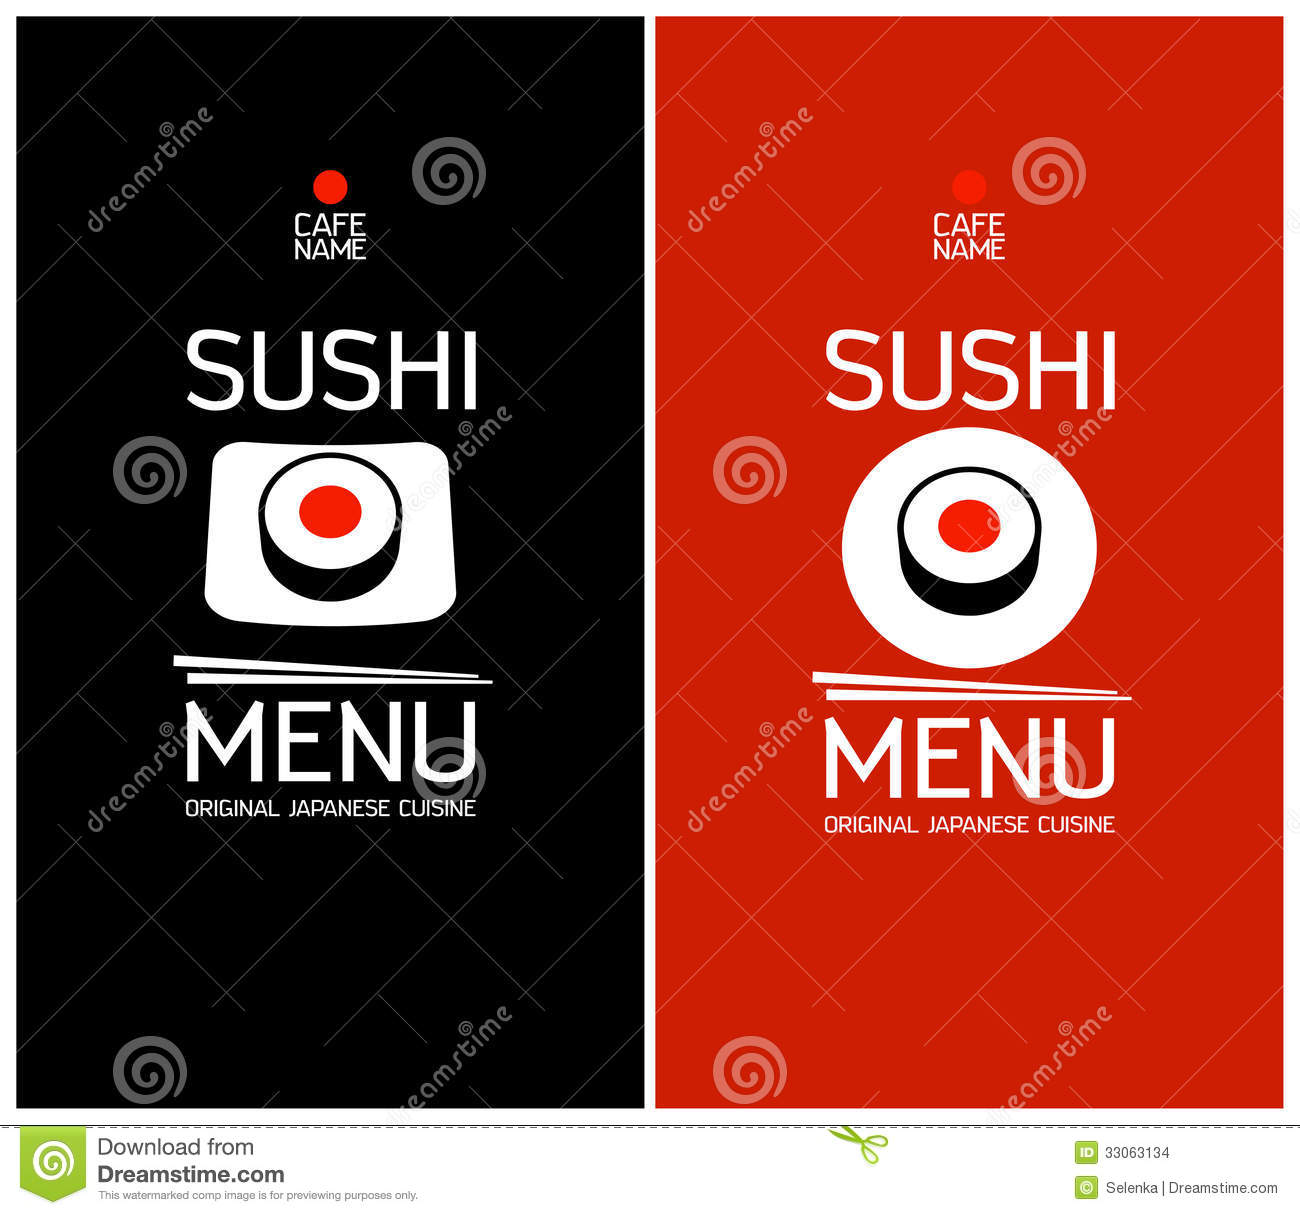 Sushi menu design template stock vector image 33063134 royalty free stock photo download sushi menu design template pronofoot35fo Choice Image